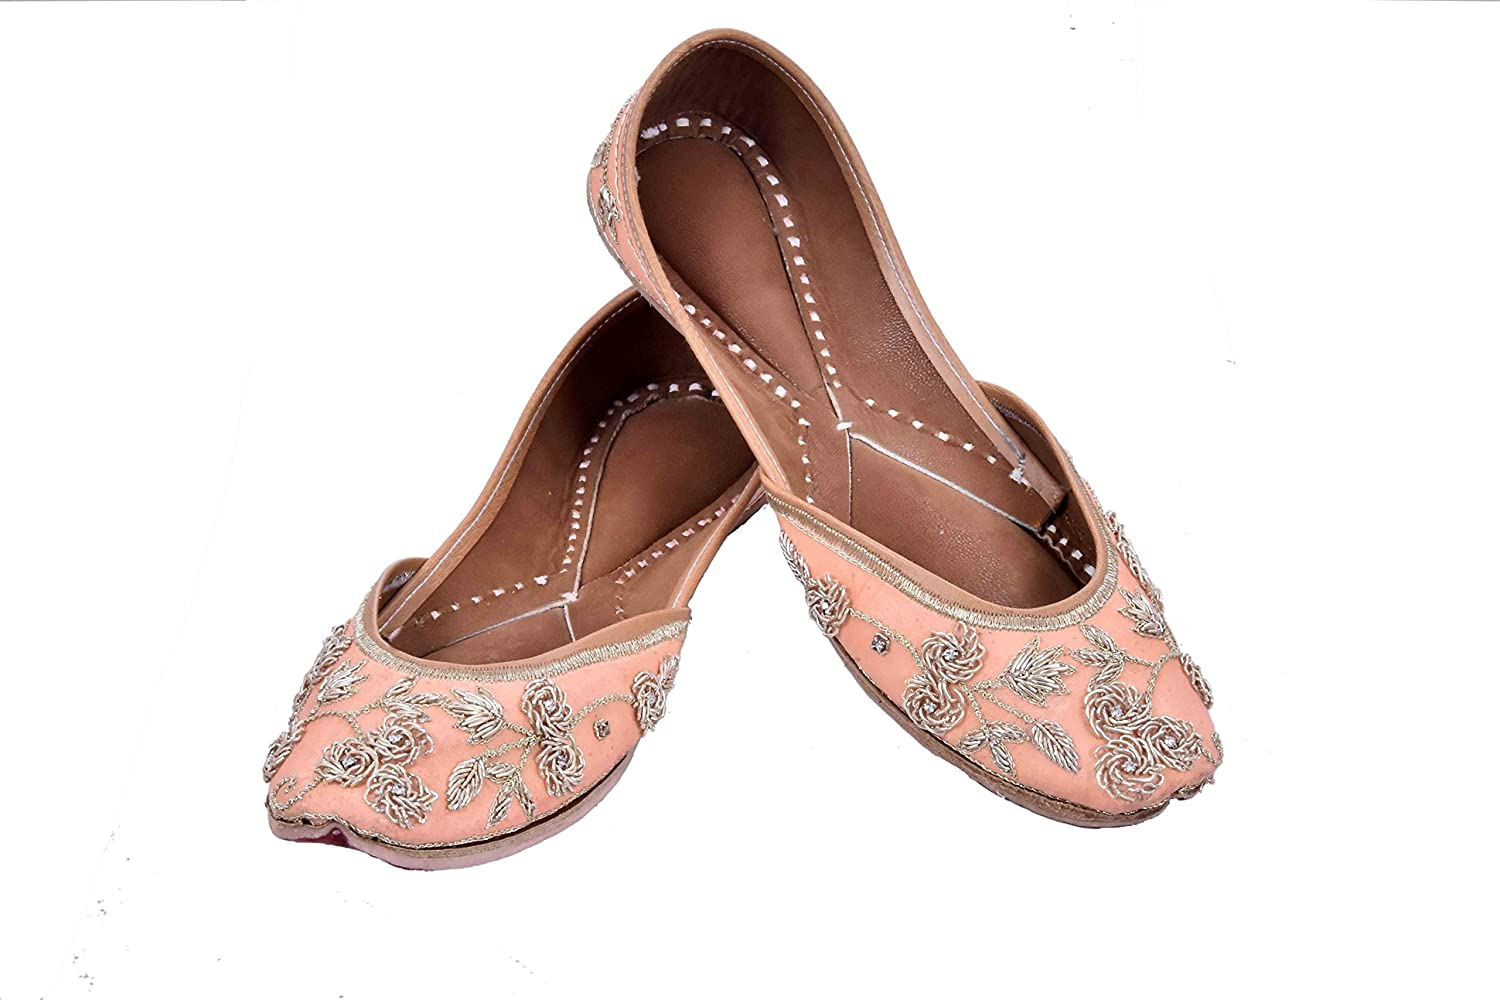 a94fa3e38b82 Amazon.com | Indian Ethnic Jutti Pump Shoes Ballet Flats Embroidered Jutti  Traditional Shoes Casual Flats for Women and Ladies (9.5) Peach | Flats